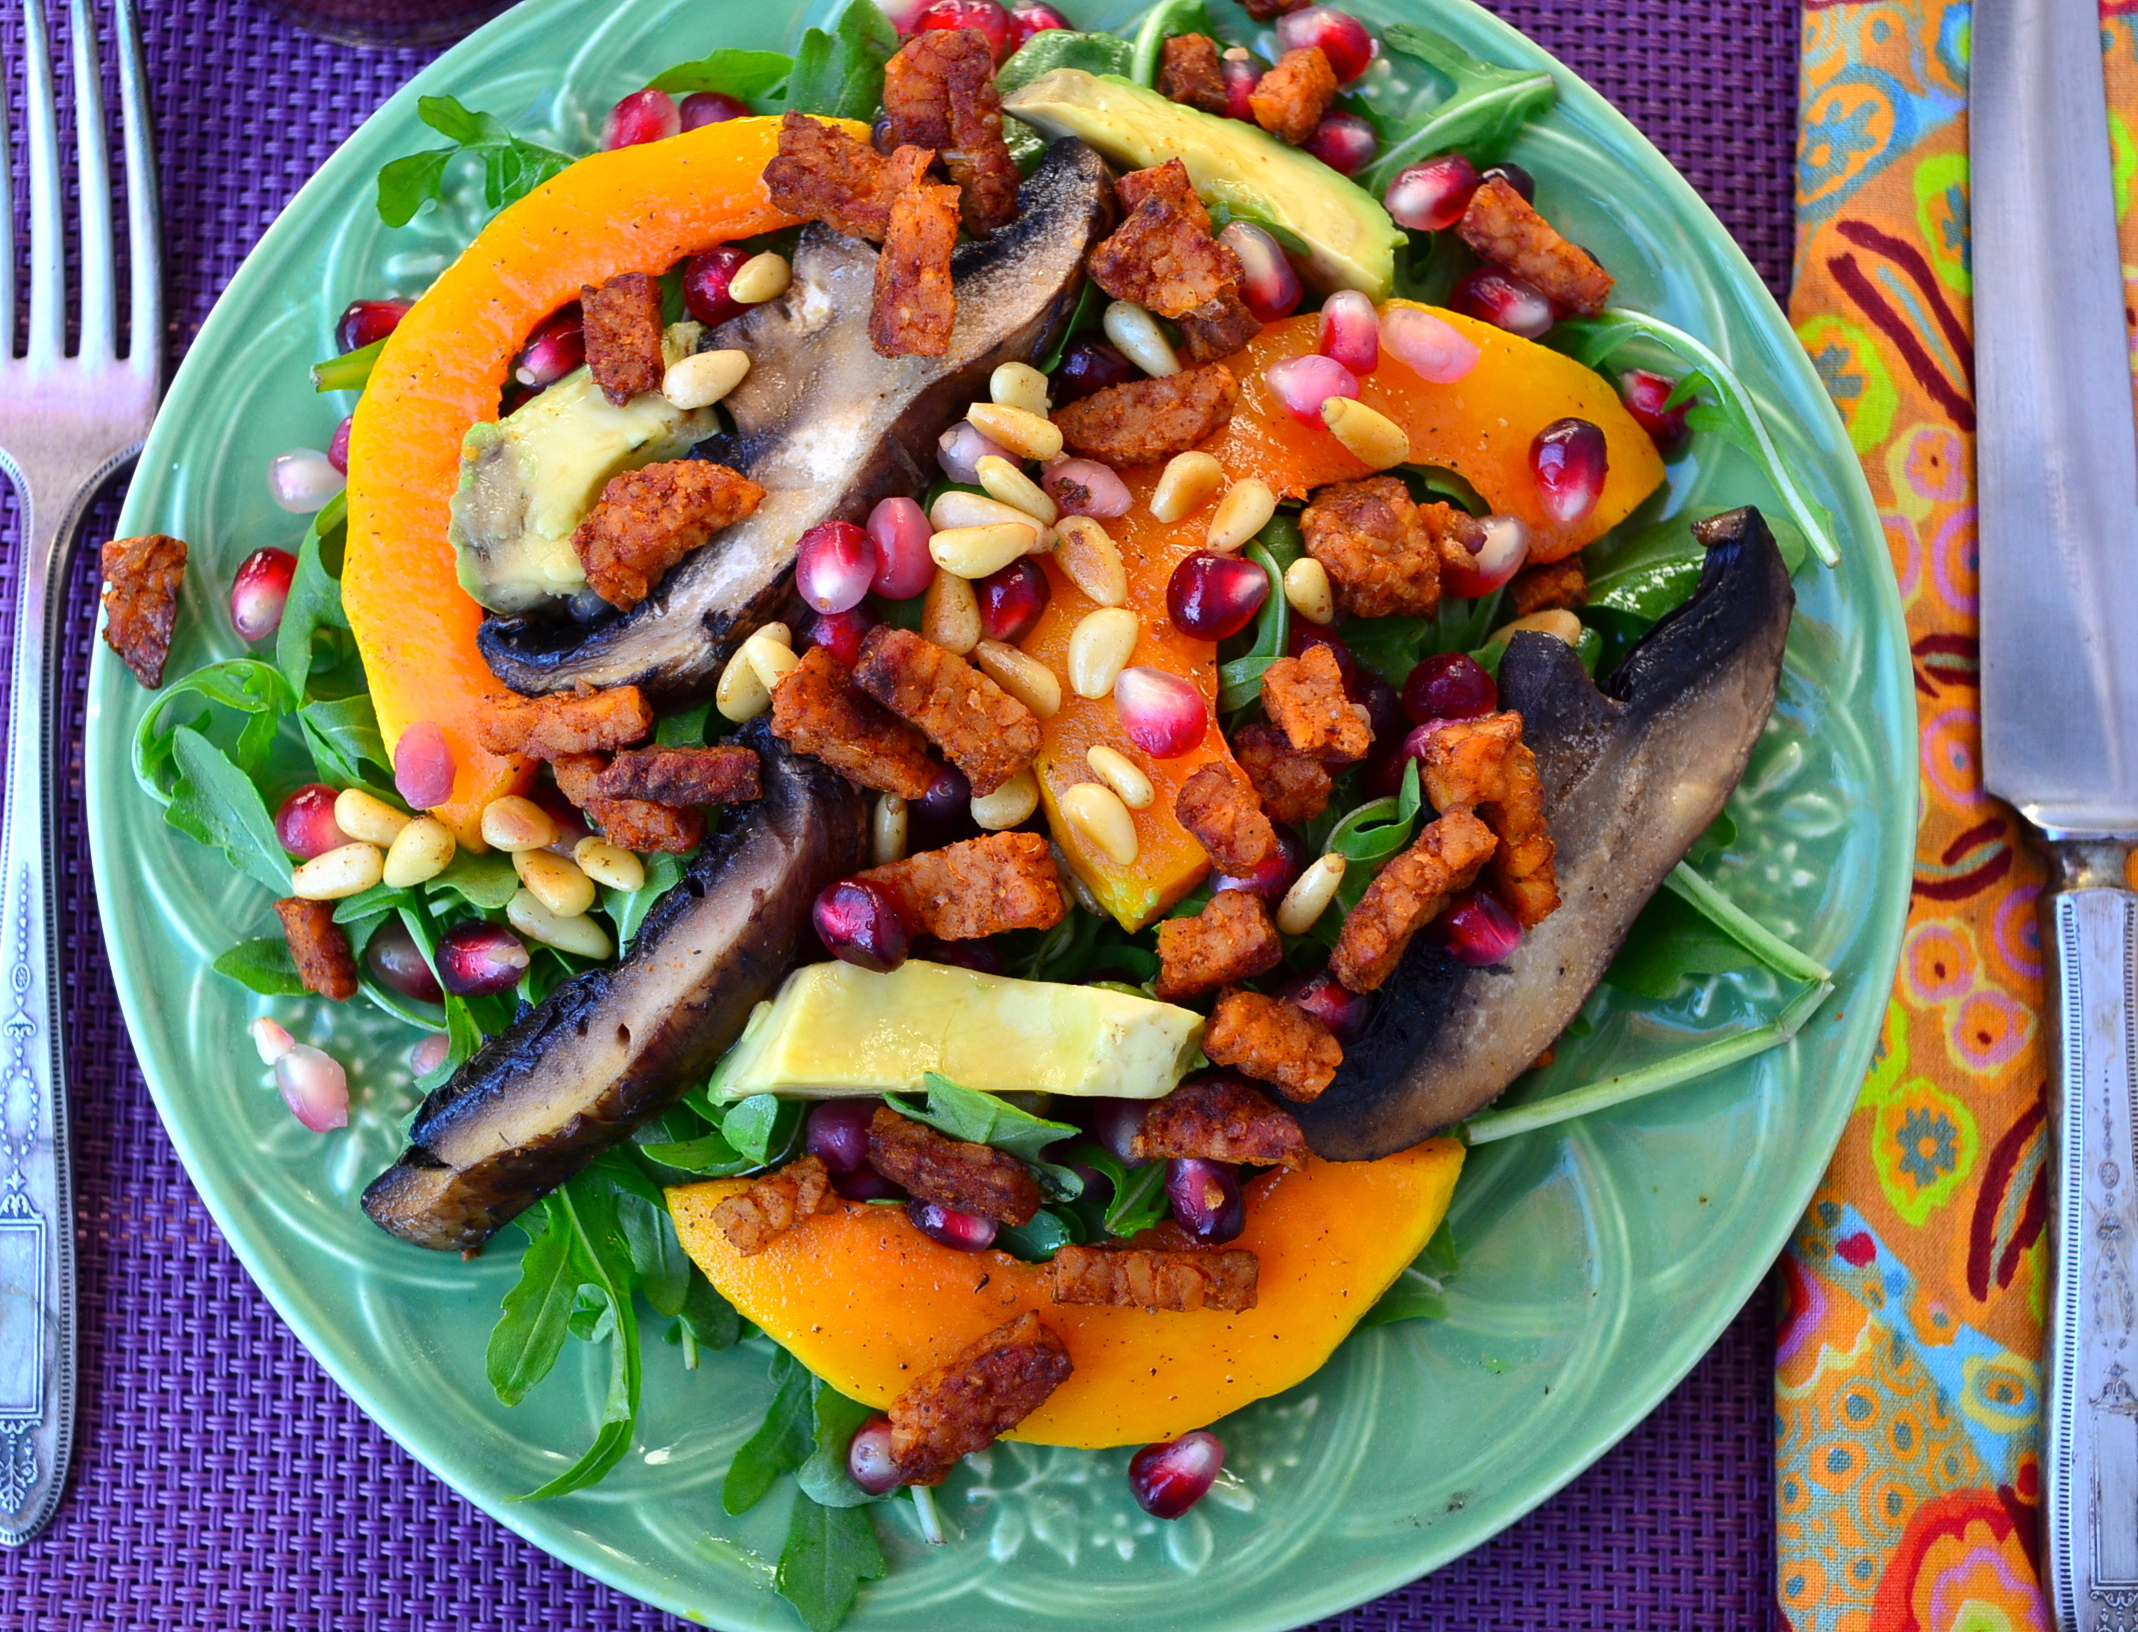 Ideas For A Vegan Thanksgiving Part 5 Winter Squash Salad With All Veggie Vegetarian I Love This Because It Really Has Little Bit Of Everything Beautiful Colors From The Different Vegetables Contrast In Textures Crunch